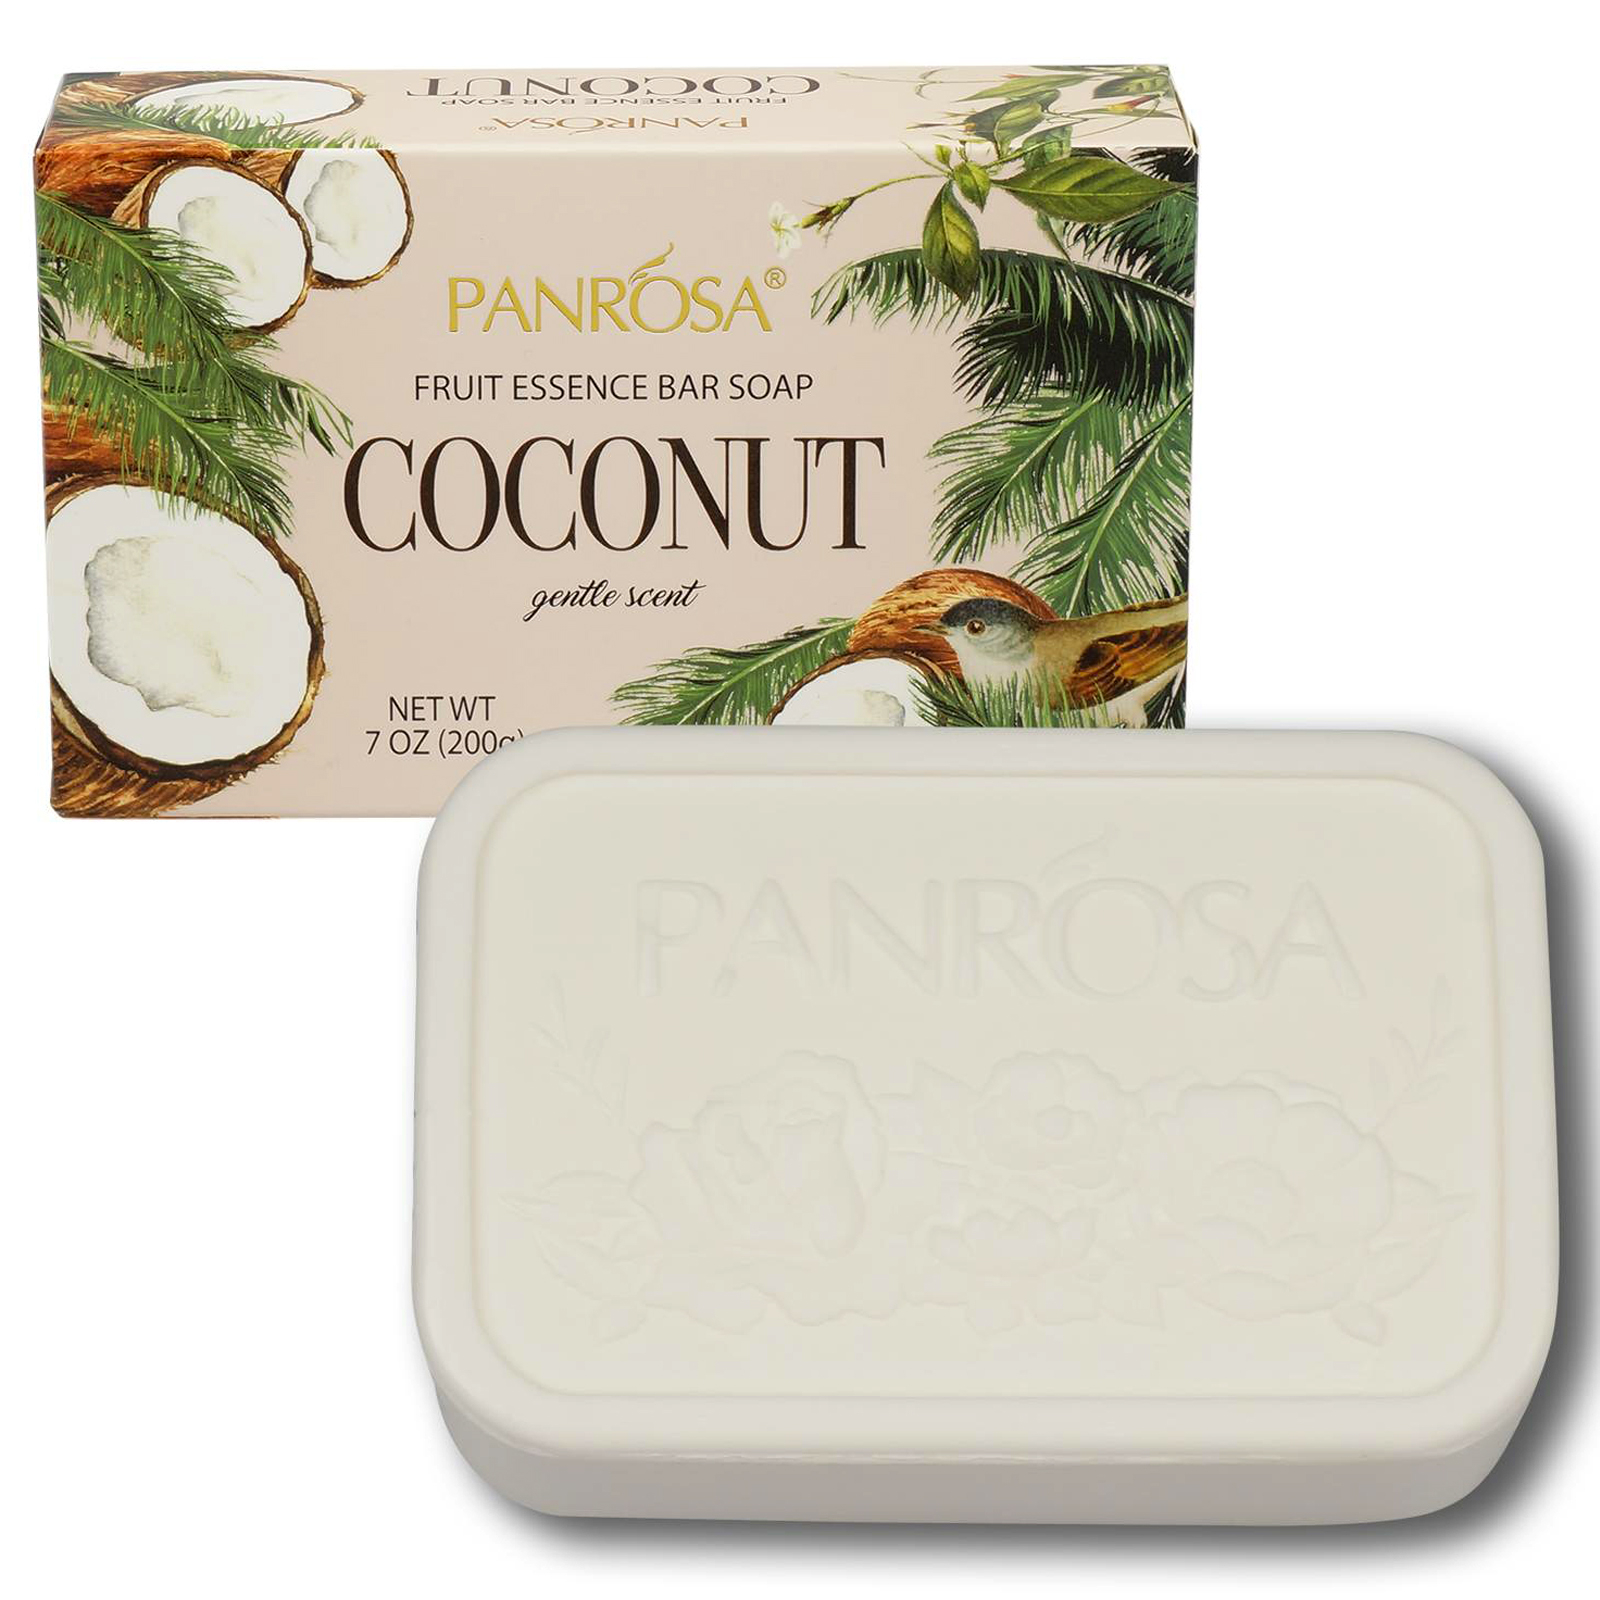 3pk Panrosa Fruit Essence Bar Soap with Gentle Coconut Scent 7oz